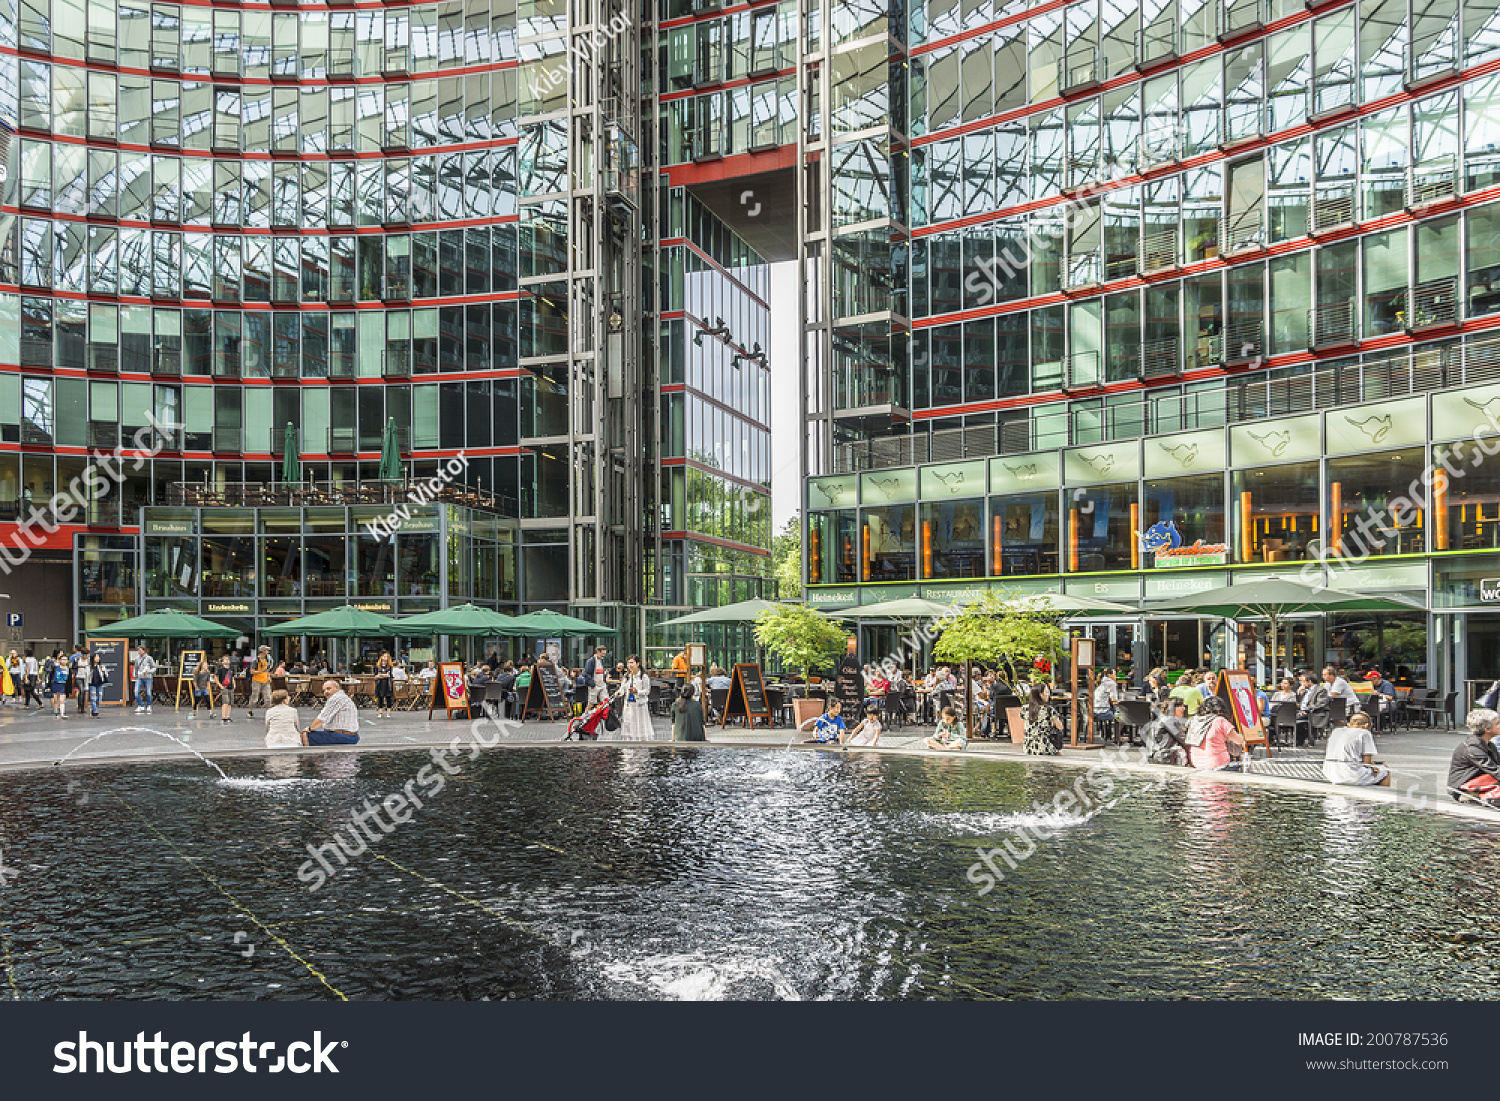 berlin june 16 2014 sony center stock photo 200787536 shutterstock. Black Bedroom Furniture Sets. Home Design Ideas